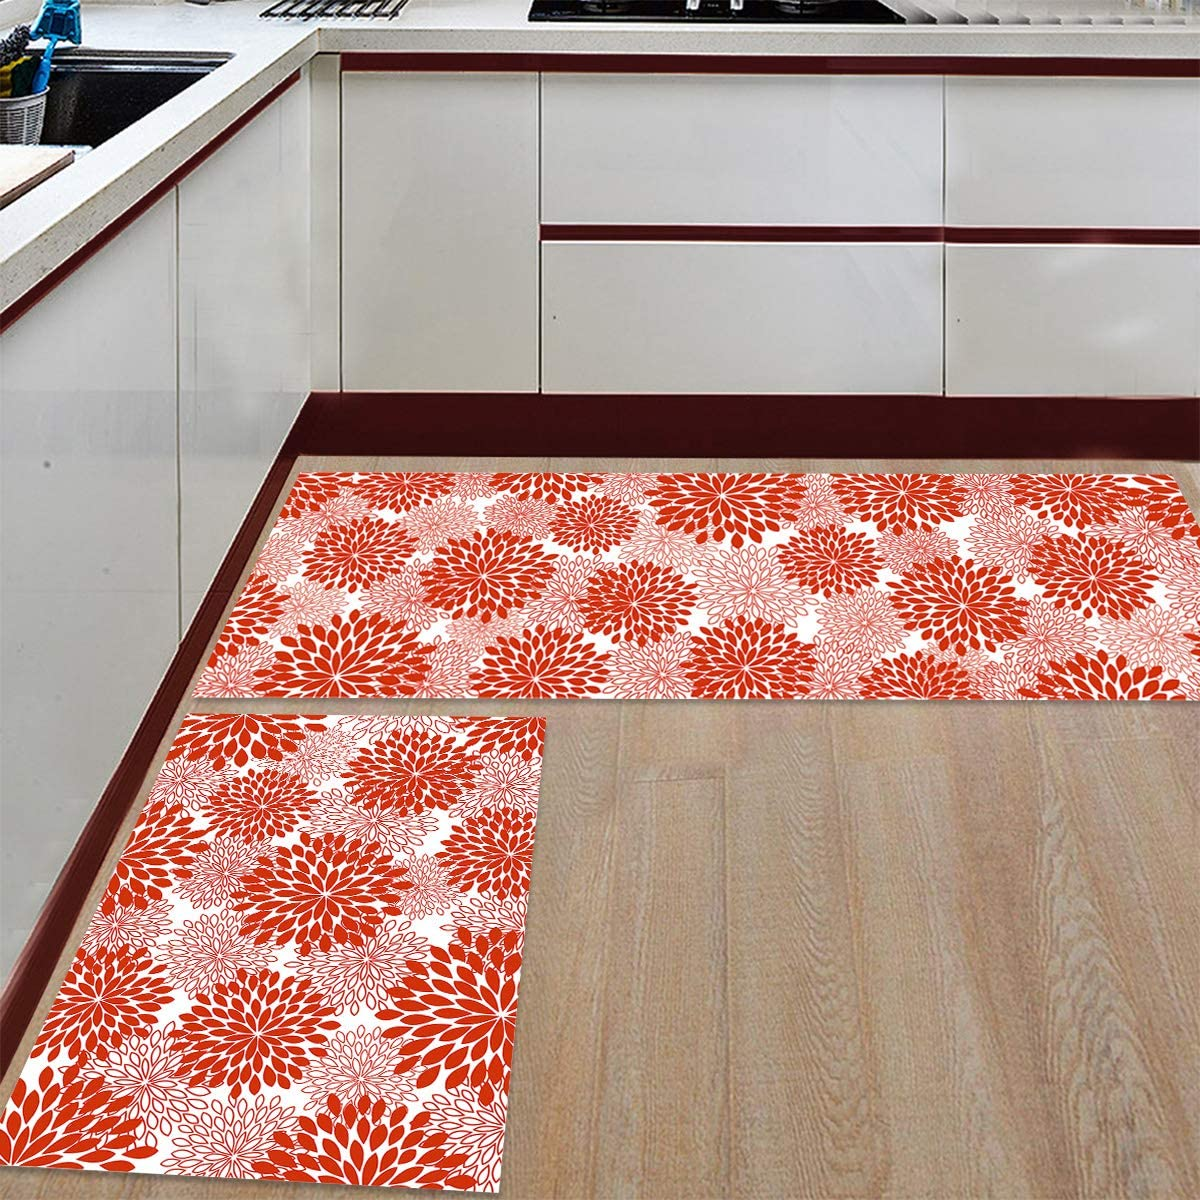 Prime Leader OFFicial shop Kitchen Mat and Rugs Flower of Ranking TOP10 Abstract Patt Set 2